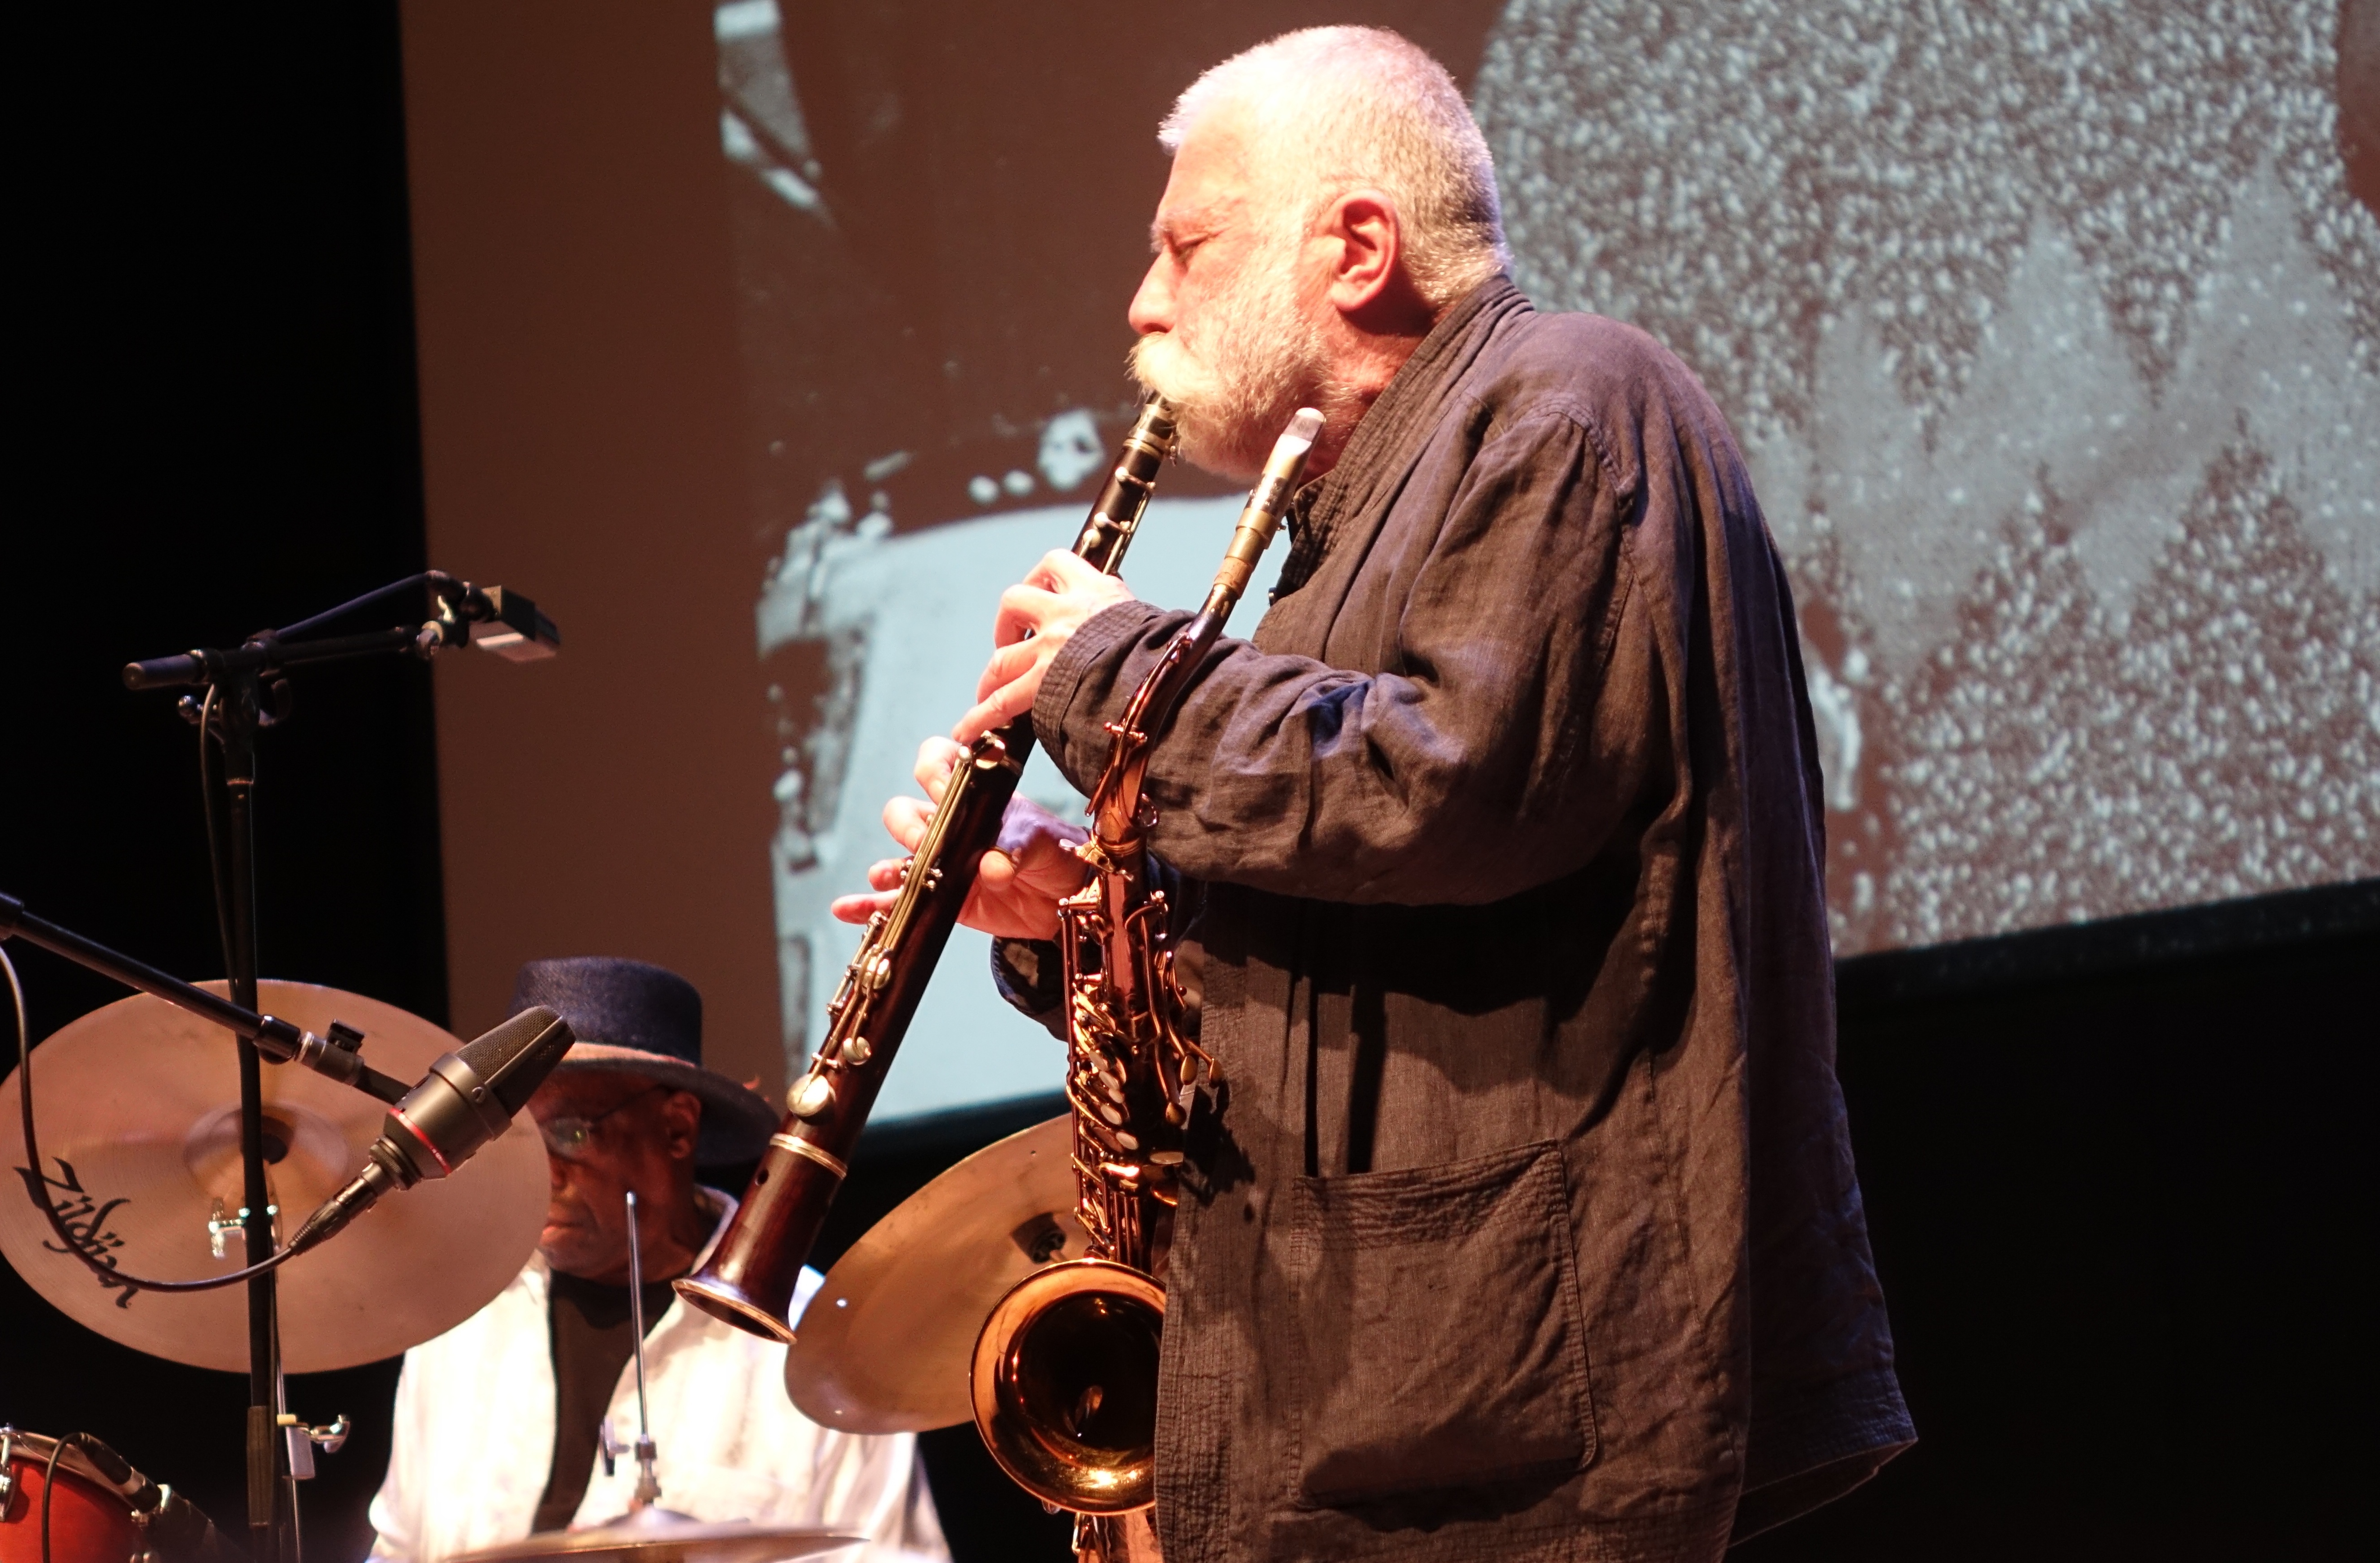 Andrew Cyrille and Peter Brotzmann at the Vision Festival in Roulette, Brooklyn in June 2019